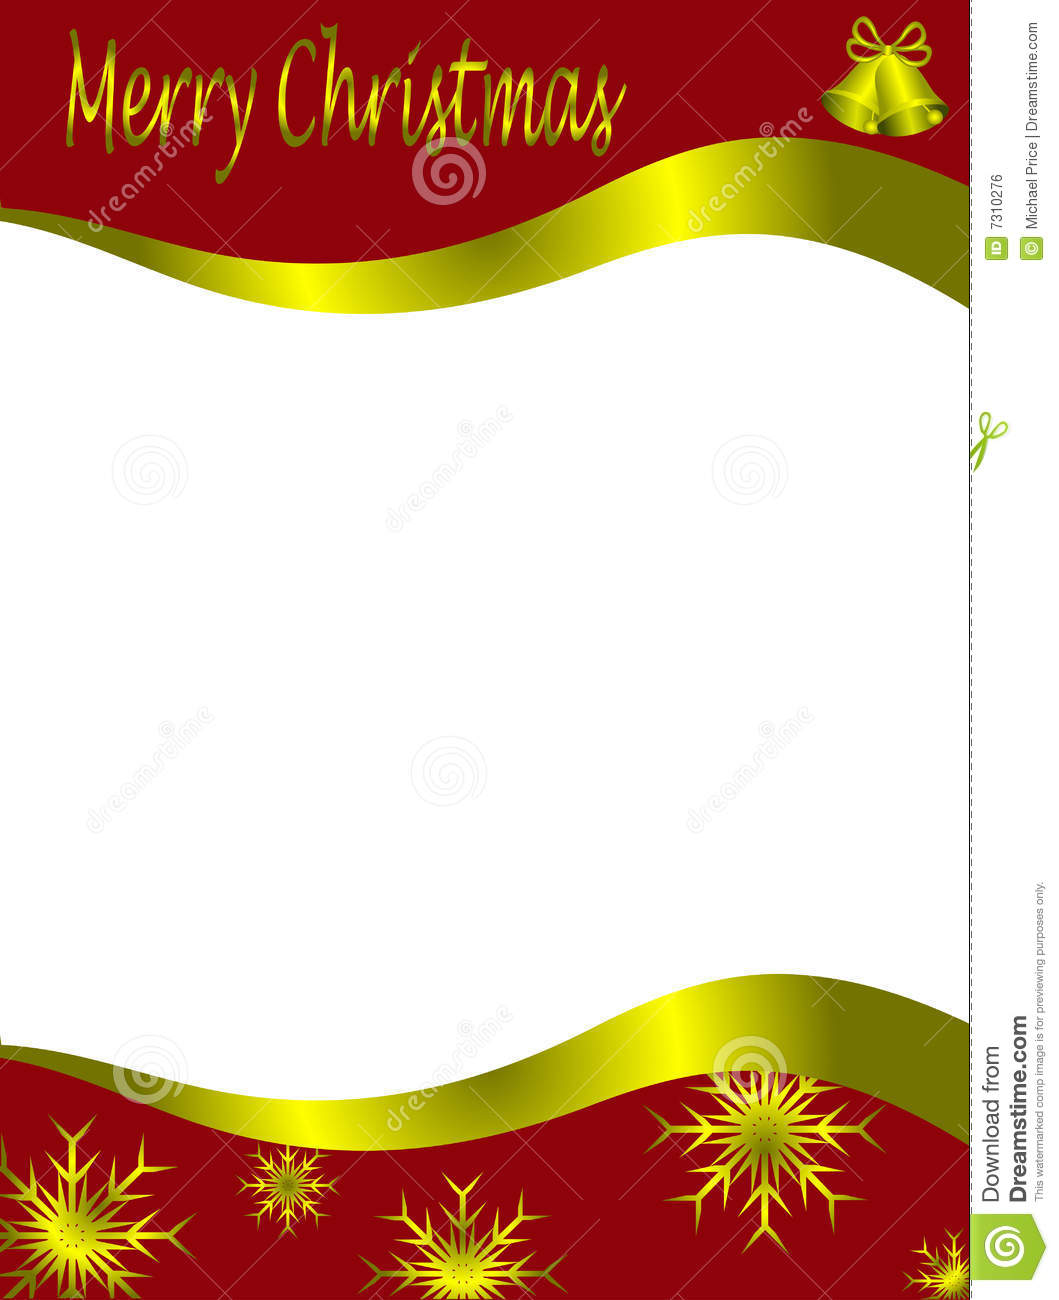 best christmas letter templates best business template vector christmas letter template top and bottom christmas borders wo6h4gnf